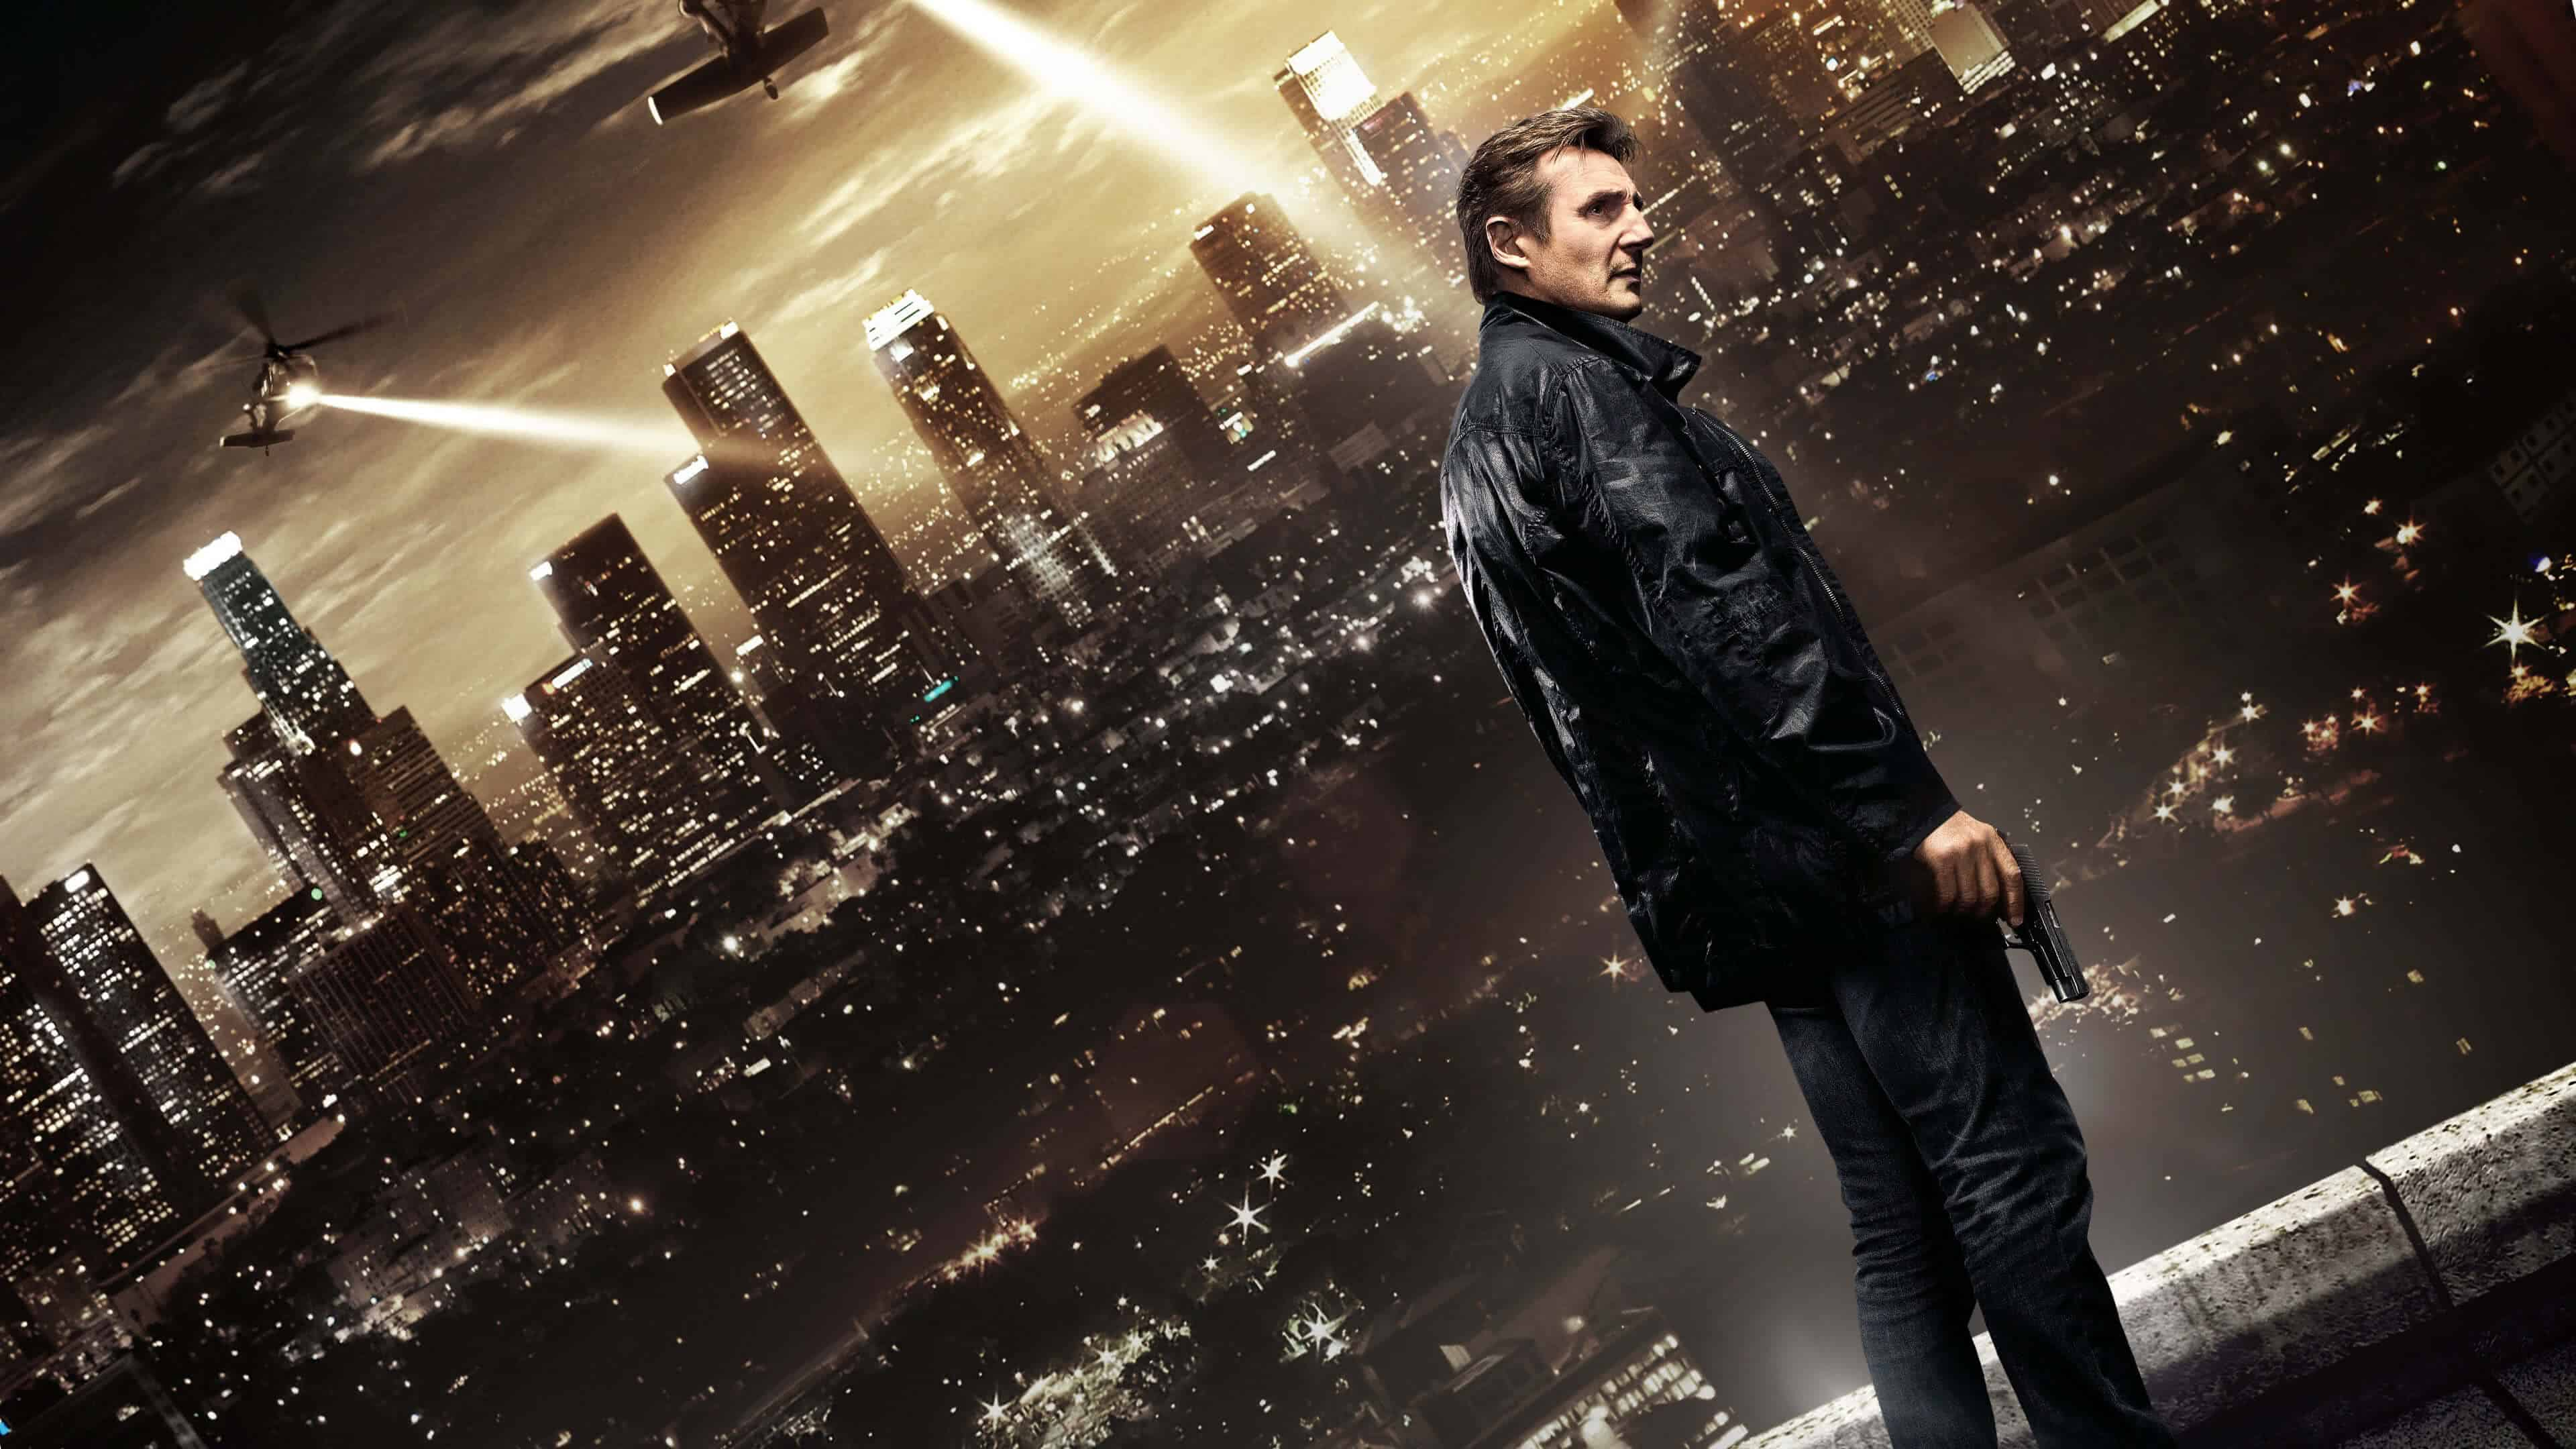 bryan mills taken 3 uhd 4k wallpaper